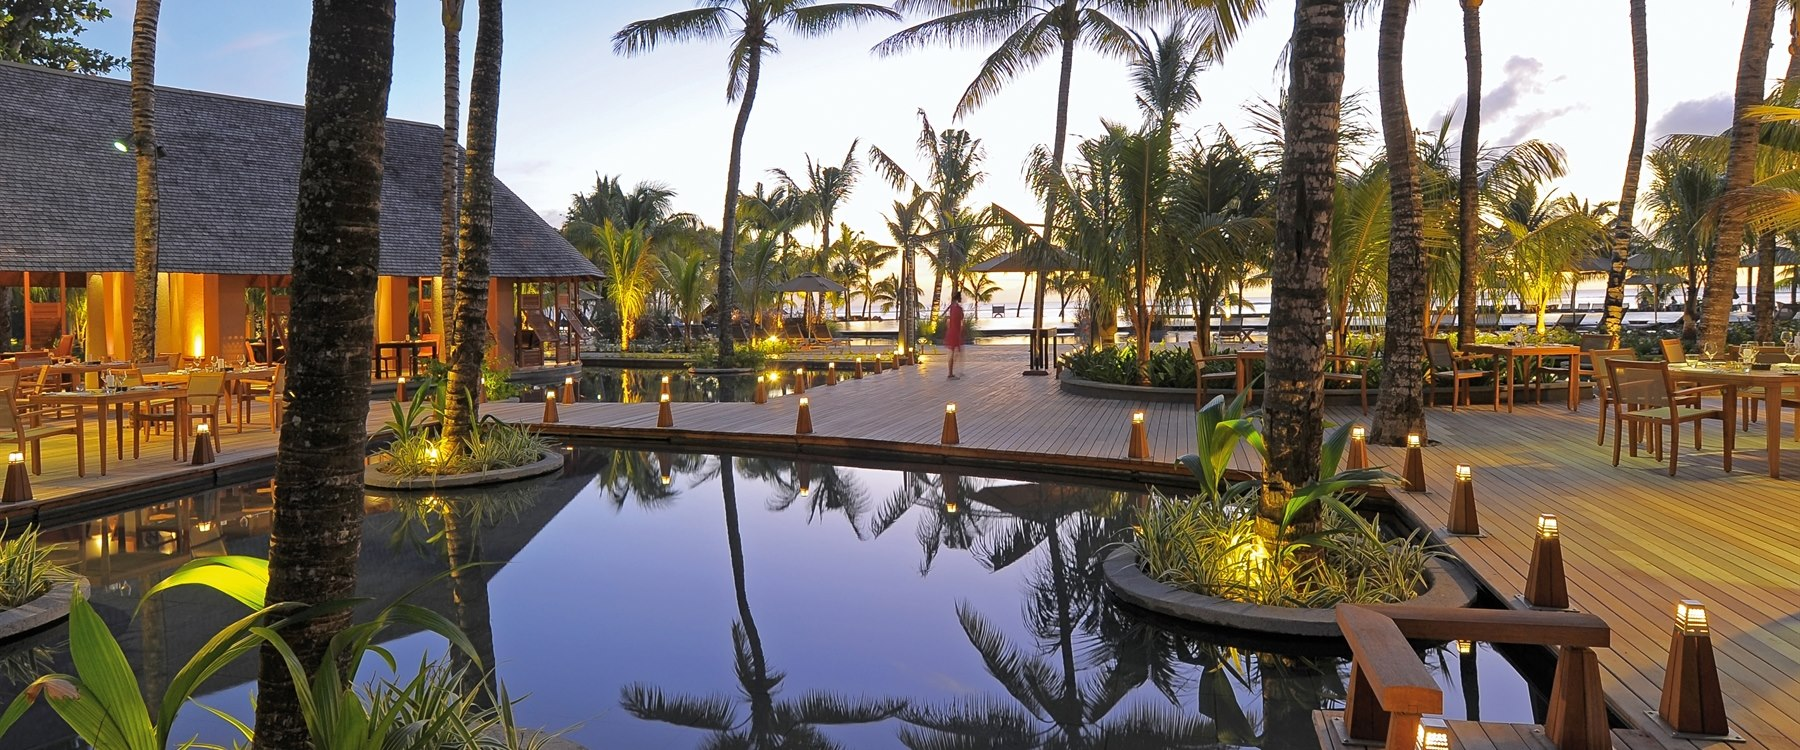 Outside dining at Trou Aux Biches Beachcomber Golf Resort & Spa, Mauritius